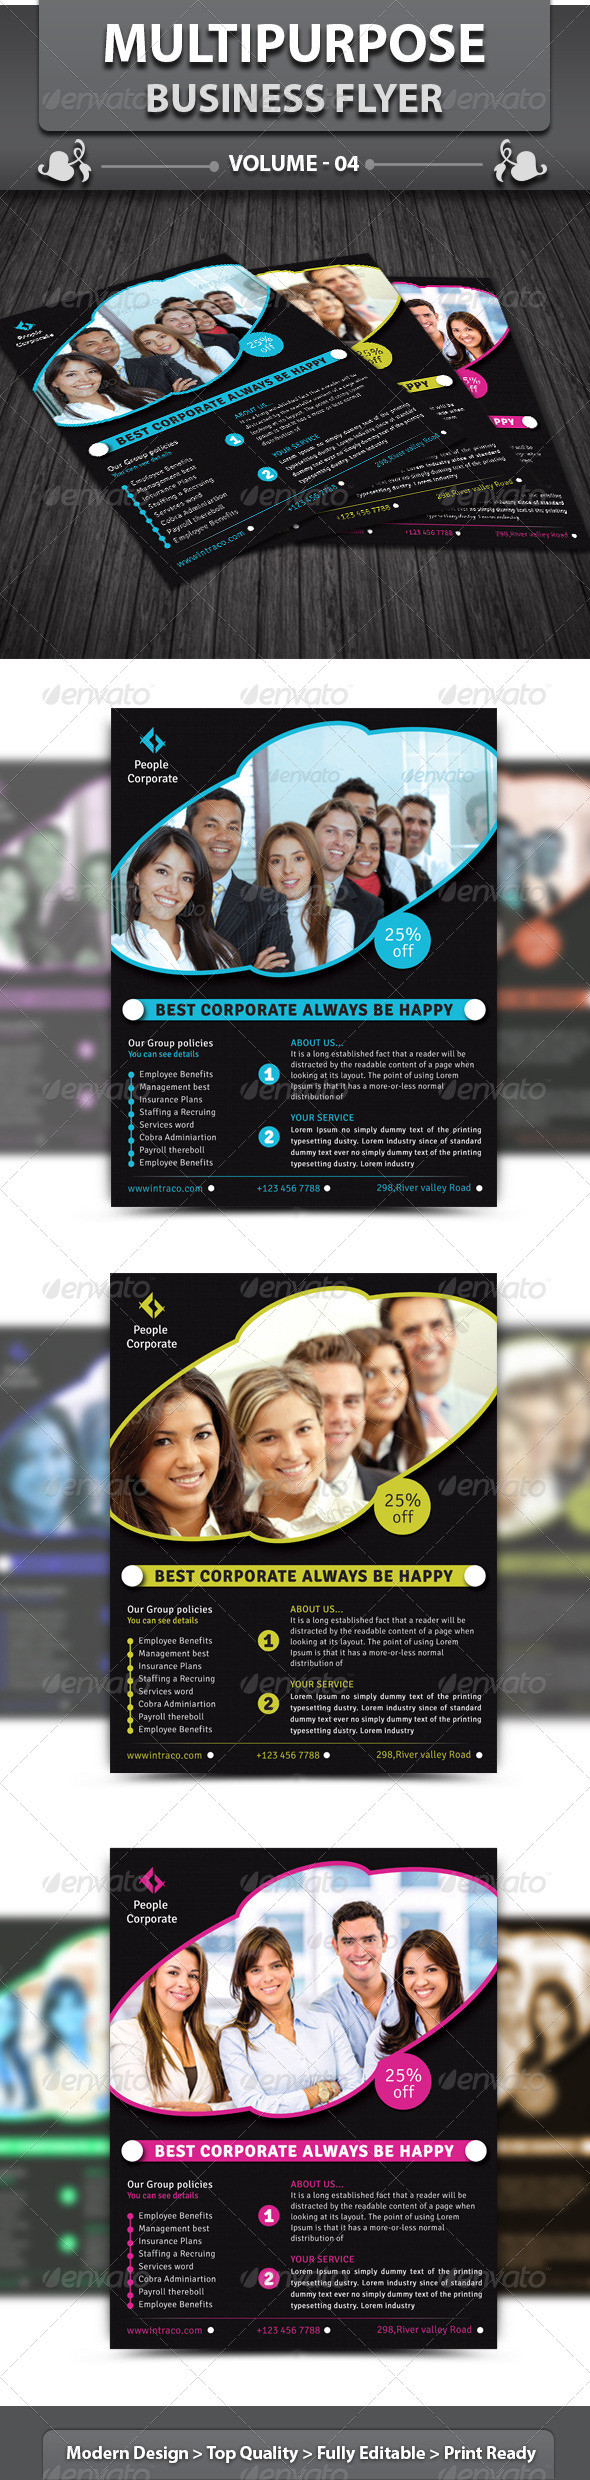 Multipurpose Business Flyer | Volume 4 - Corporate Flyers